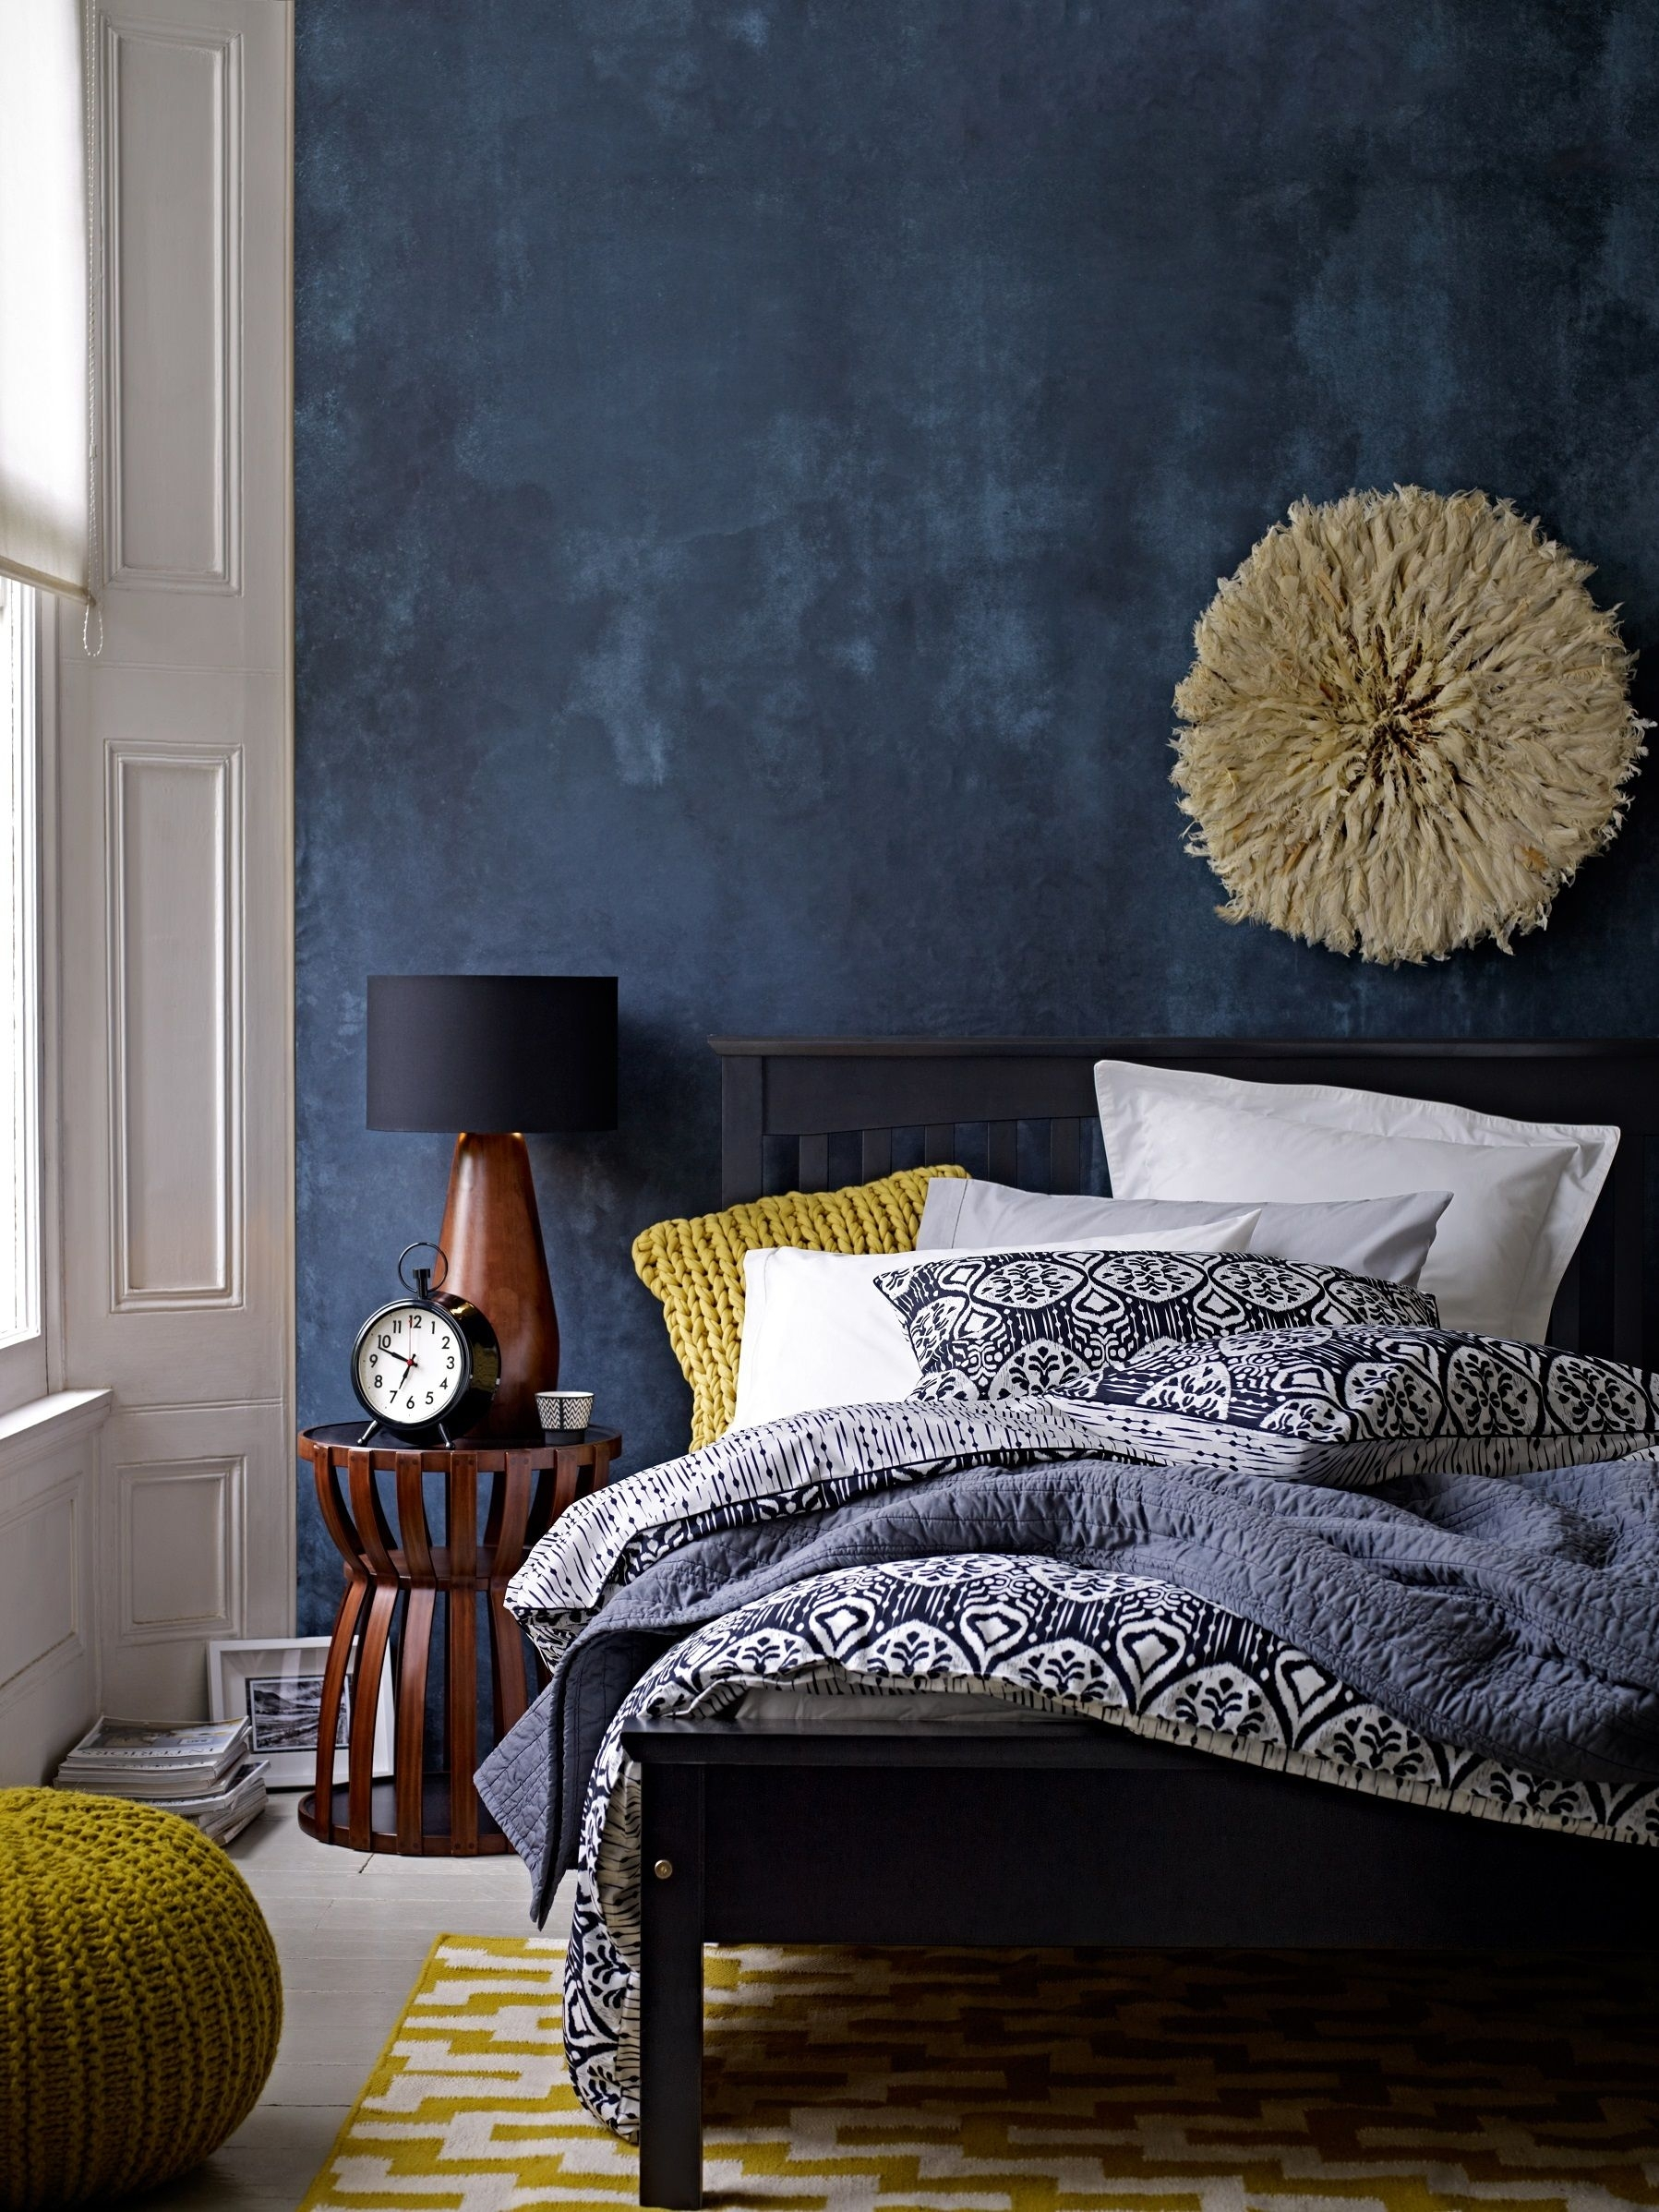 Deep Blue Accent Wall In Modern Eclectic Bedroom – Gorgeous Use Of With Regard To 2017 Blue Wall Accents (View 12 of 15)